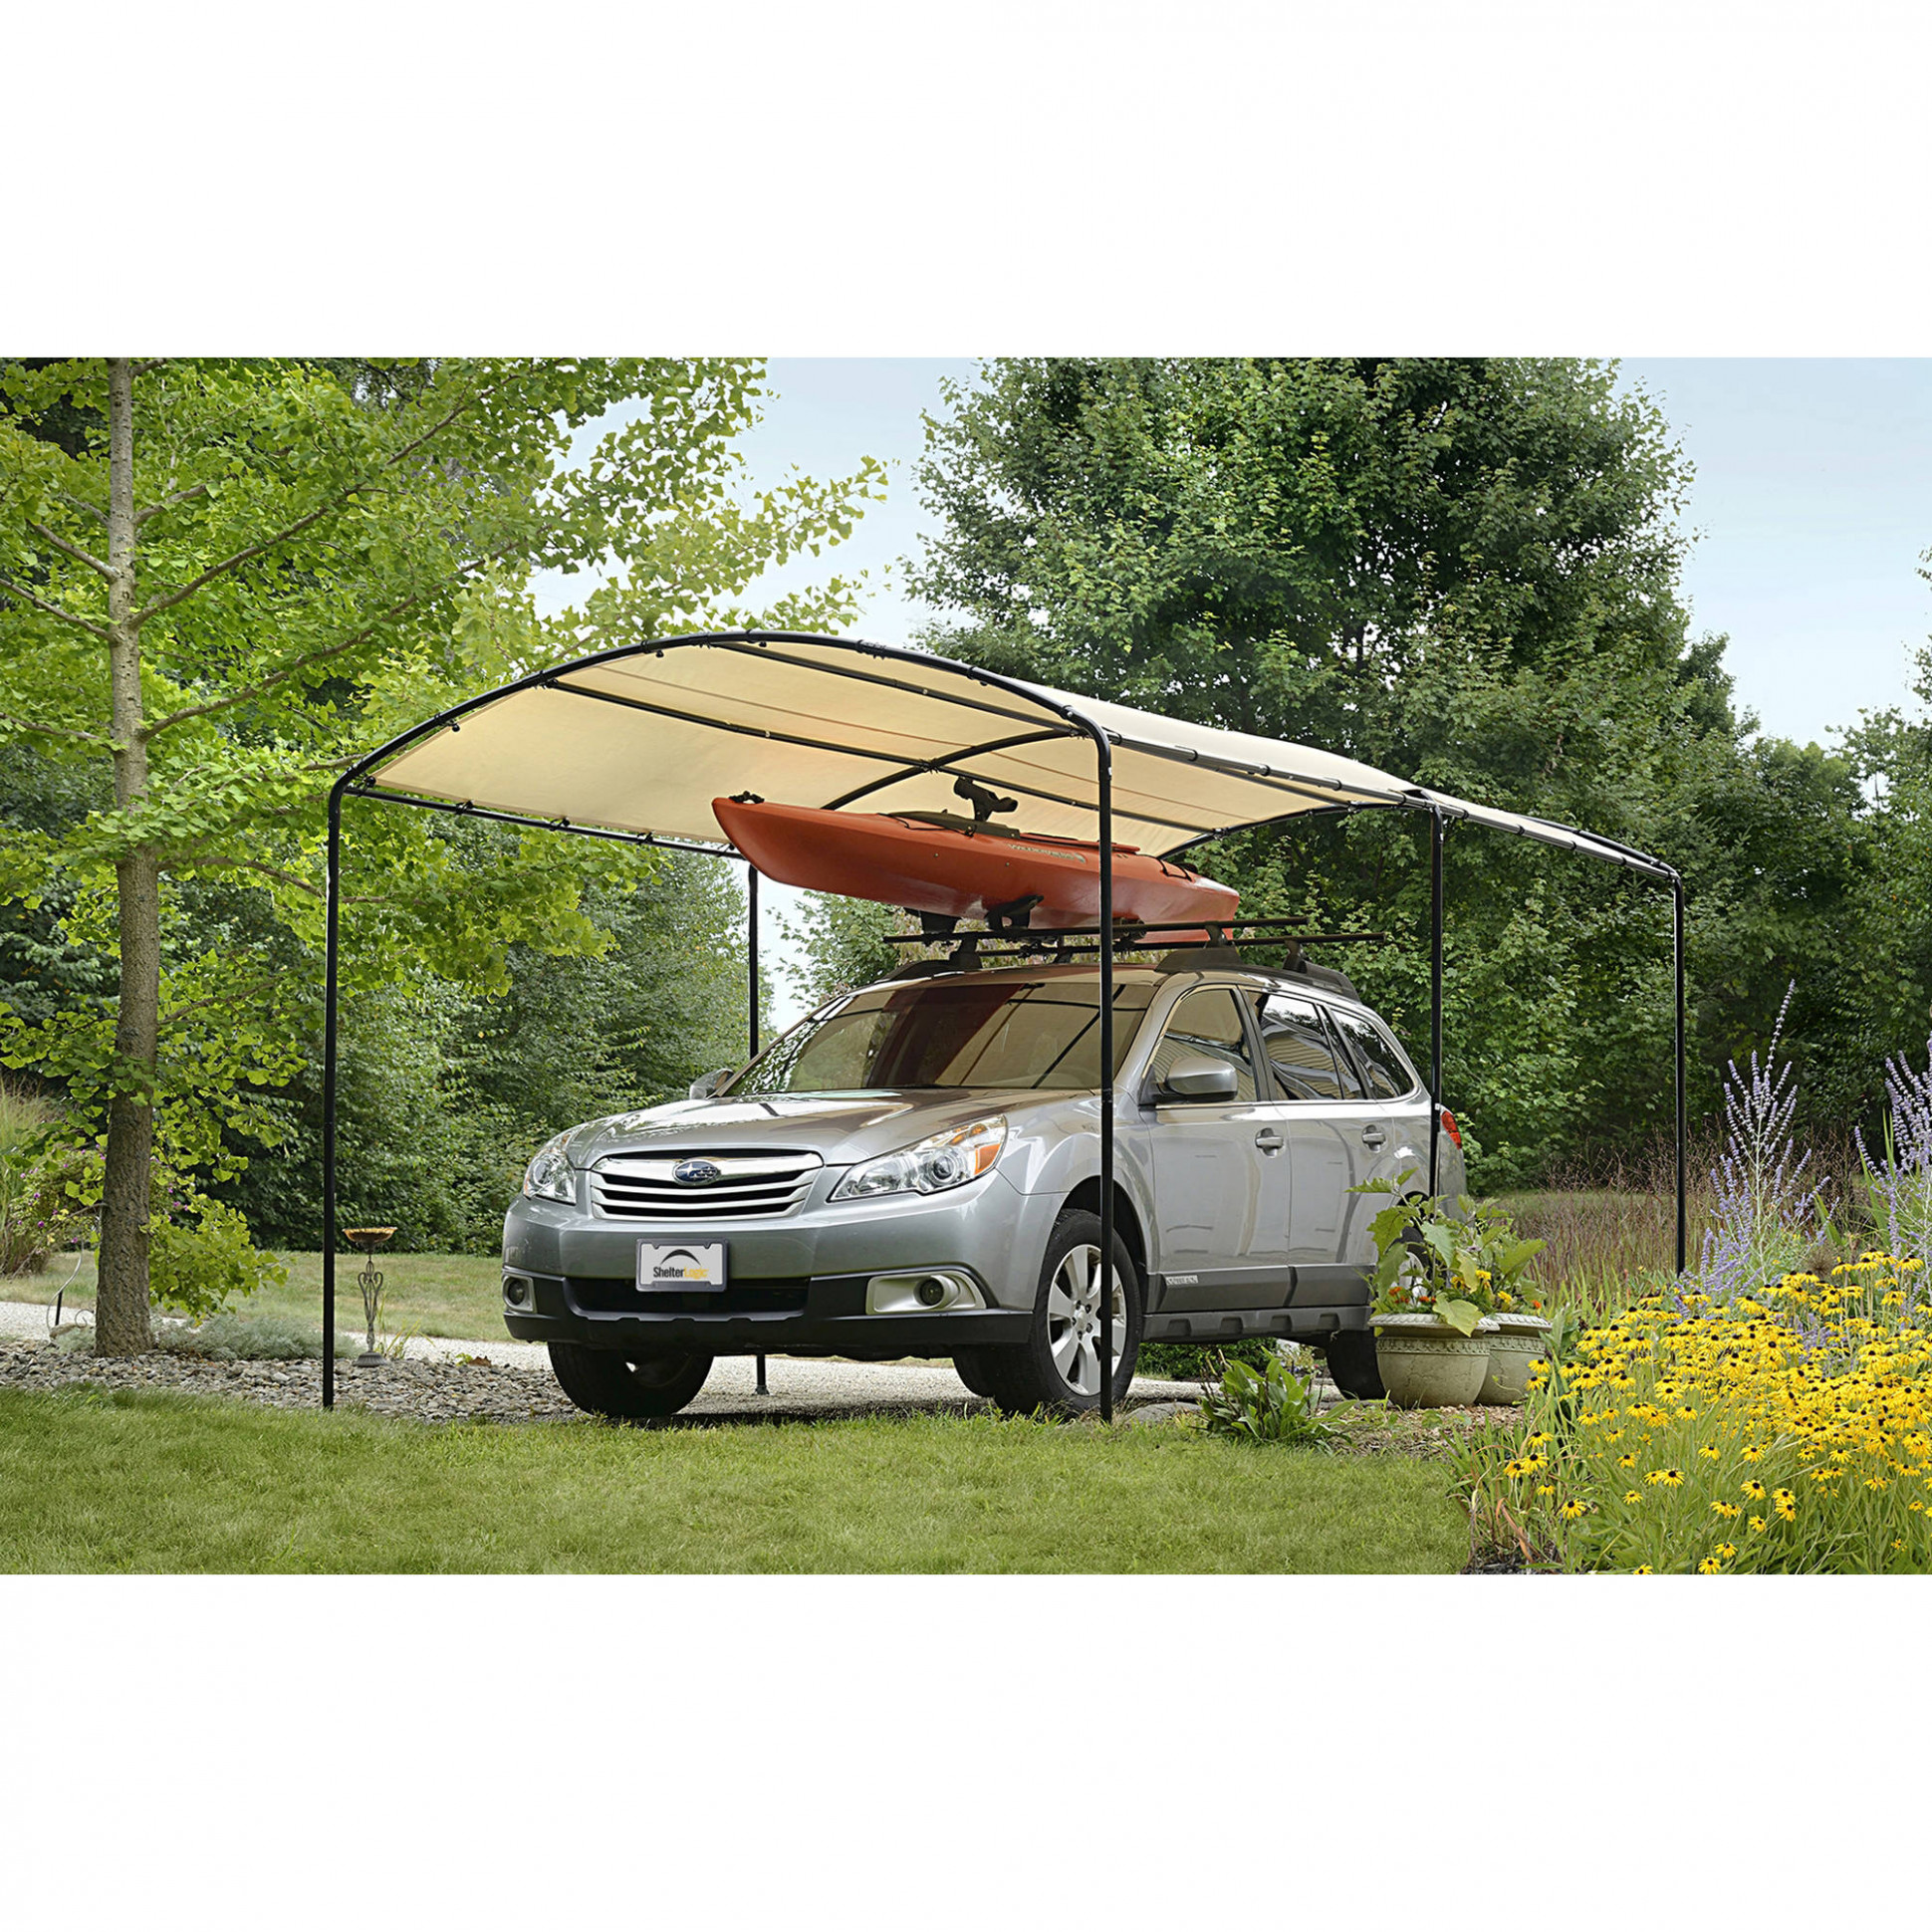 Details About Car Arch Canopy 11x11 Ft Carport Heavy Duty Waterproof UV Weather Rain Snow Sun Carport Canopy Snow